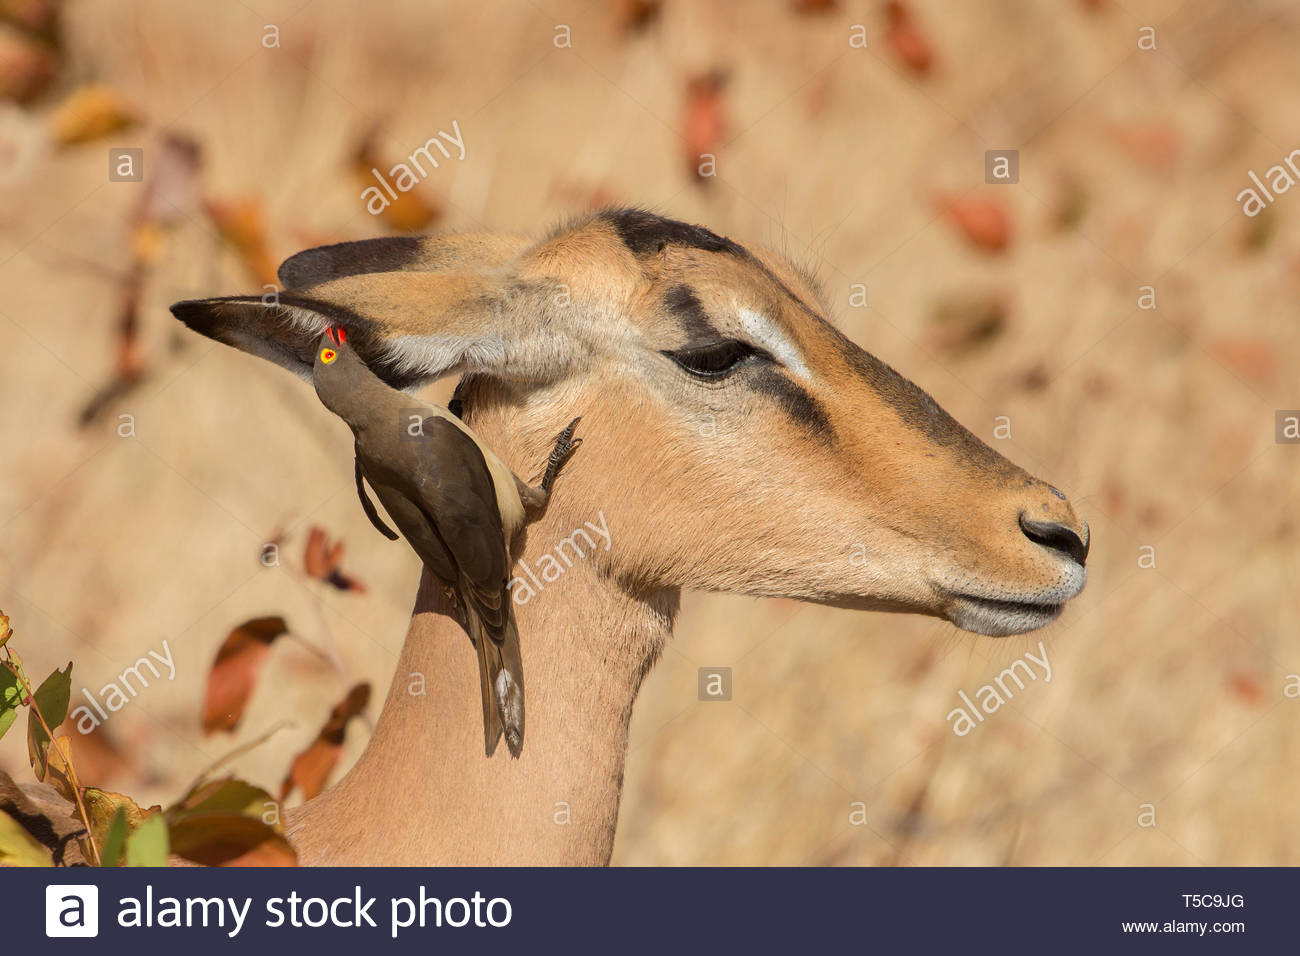 Symbiosis, Impala with oxpecker, Kruger Park, South Africa - Stock Image